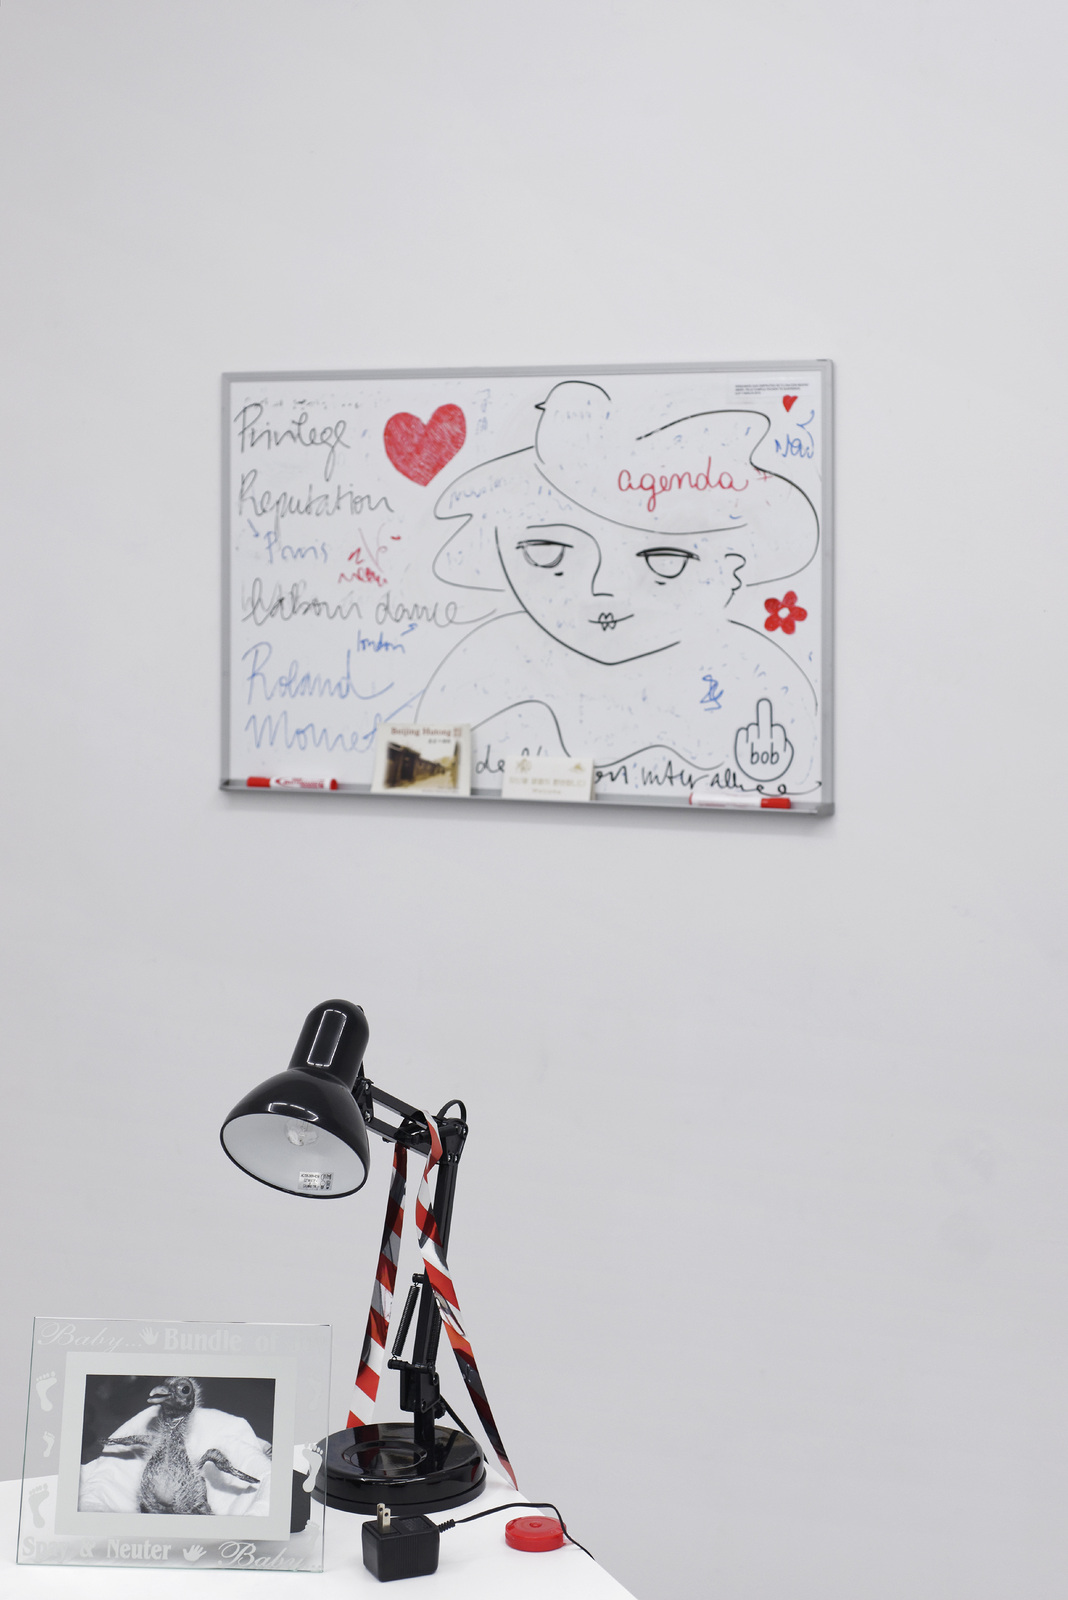 10_Reputation_Amalia Ulman_New Galerie